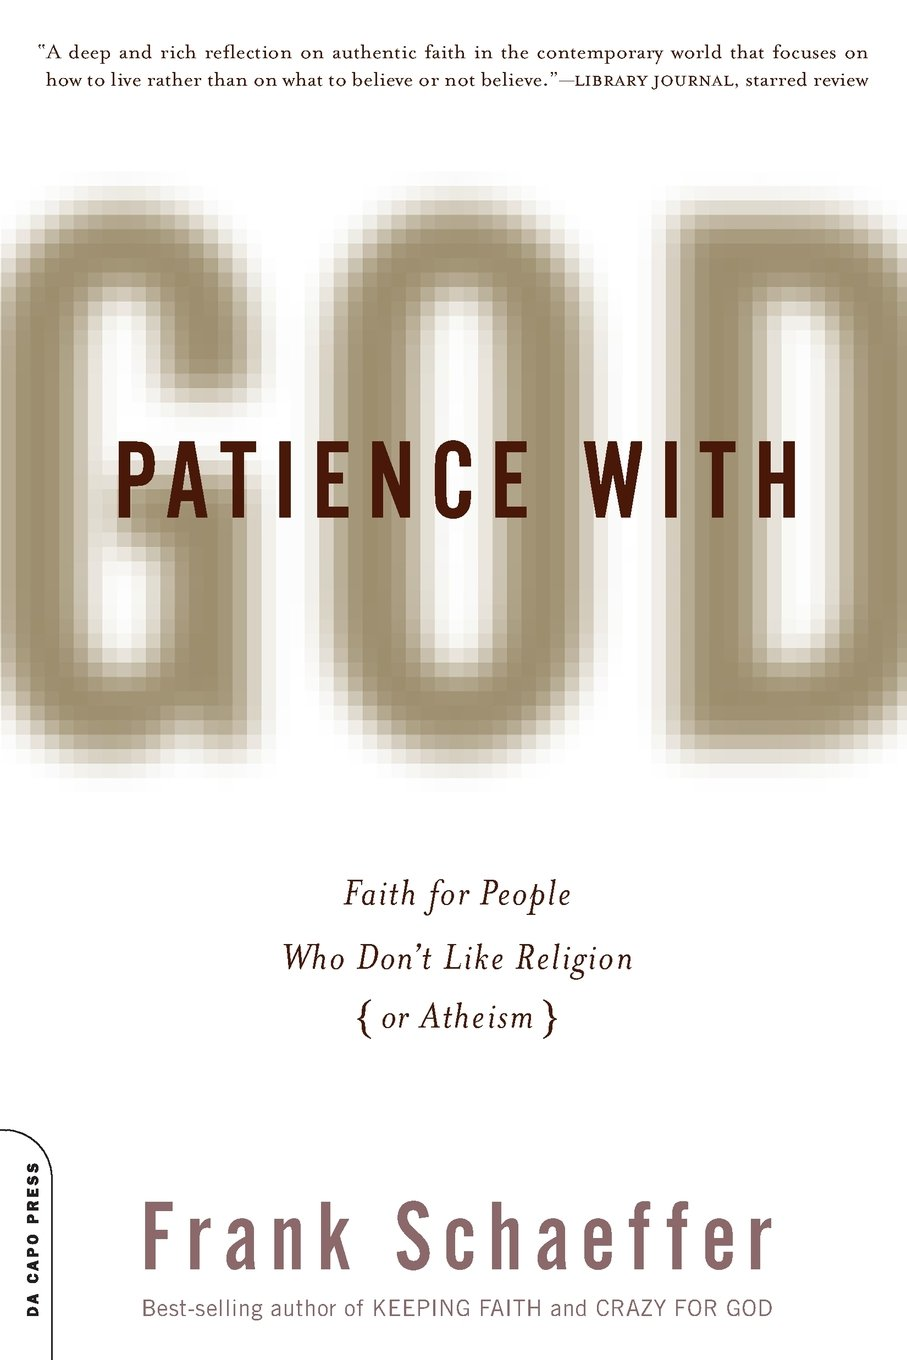 Amazon.com: Patience With God: Faith for People Who Don't Like Religion (or  Atheism) (9780306819223): Frank Schaeffer: Books